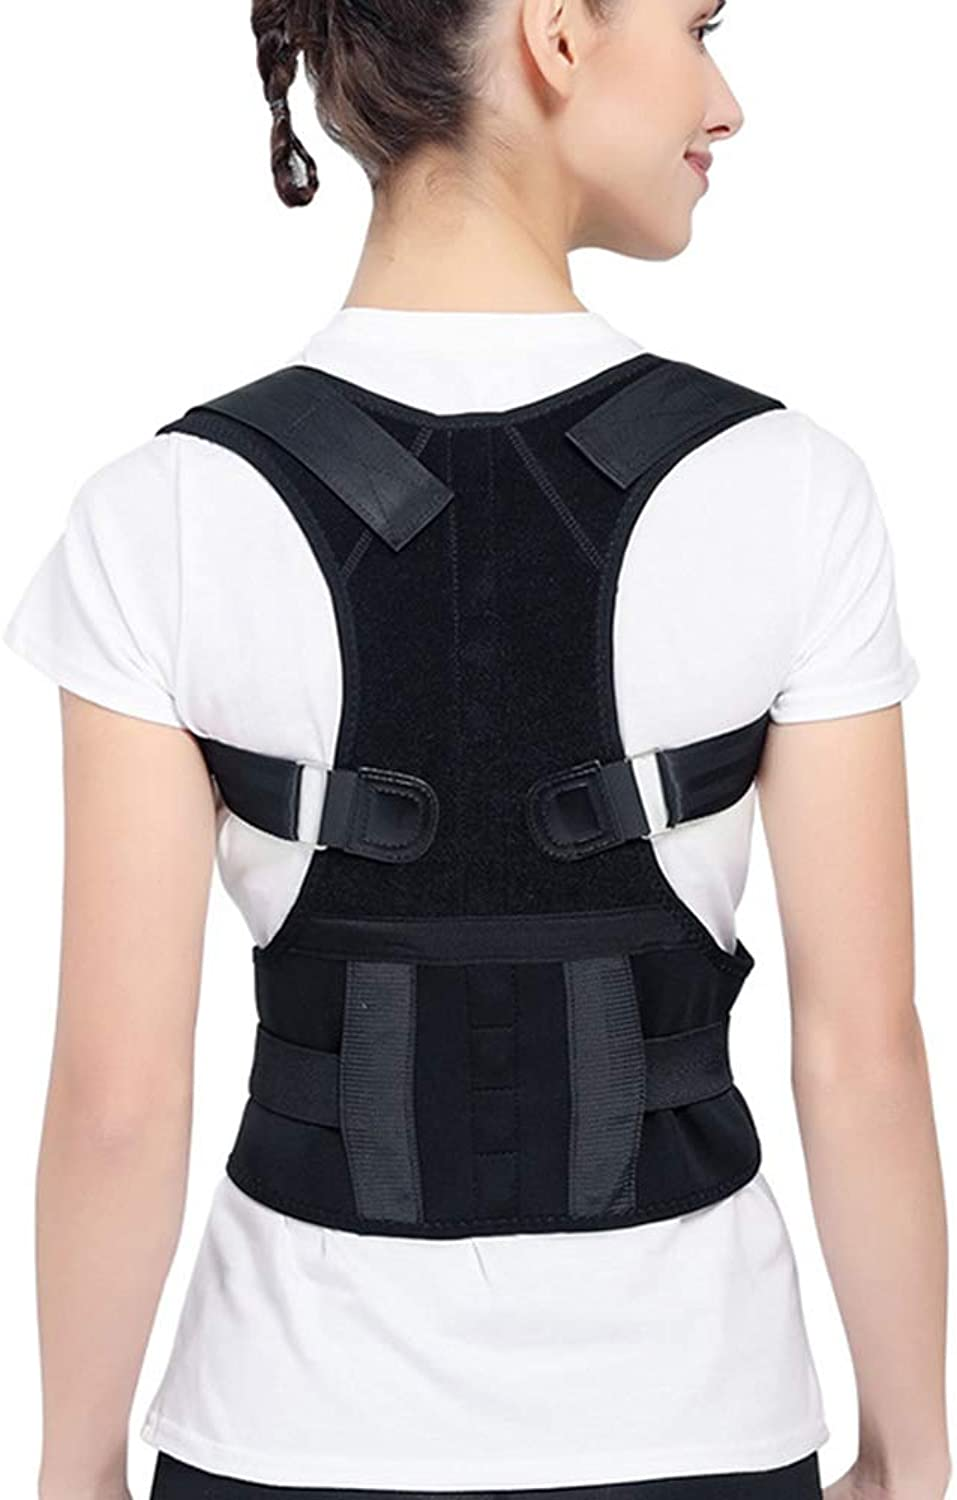 Posture Corrector Magnetic Correction Belt Humpback Styling Back Fixation Sitting Position Correction (color   S)